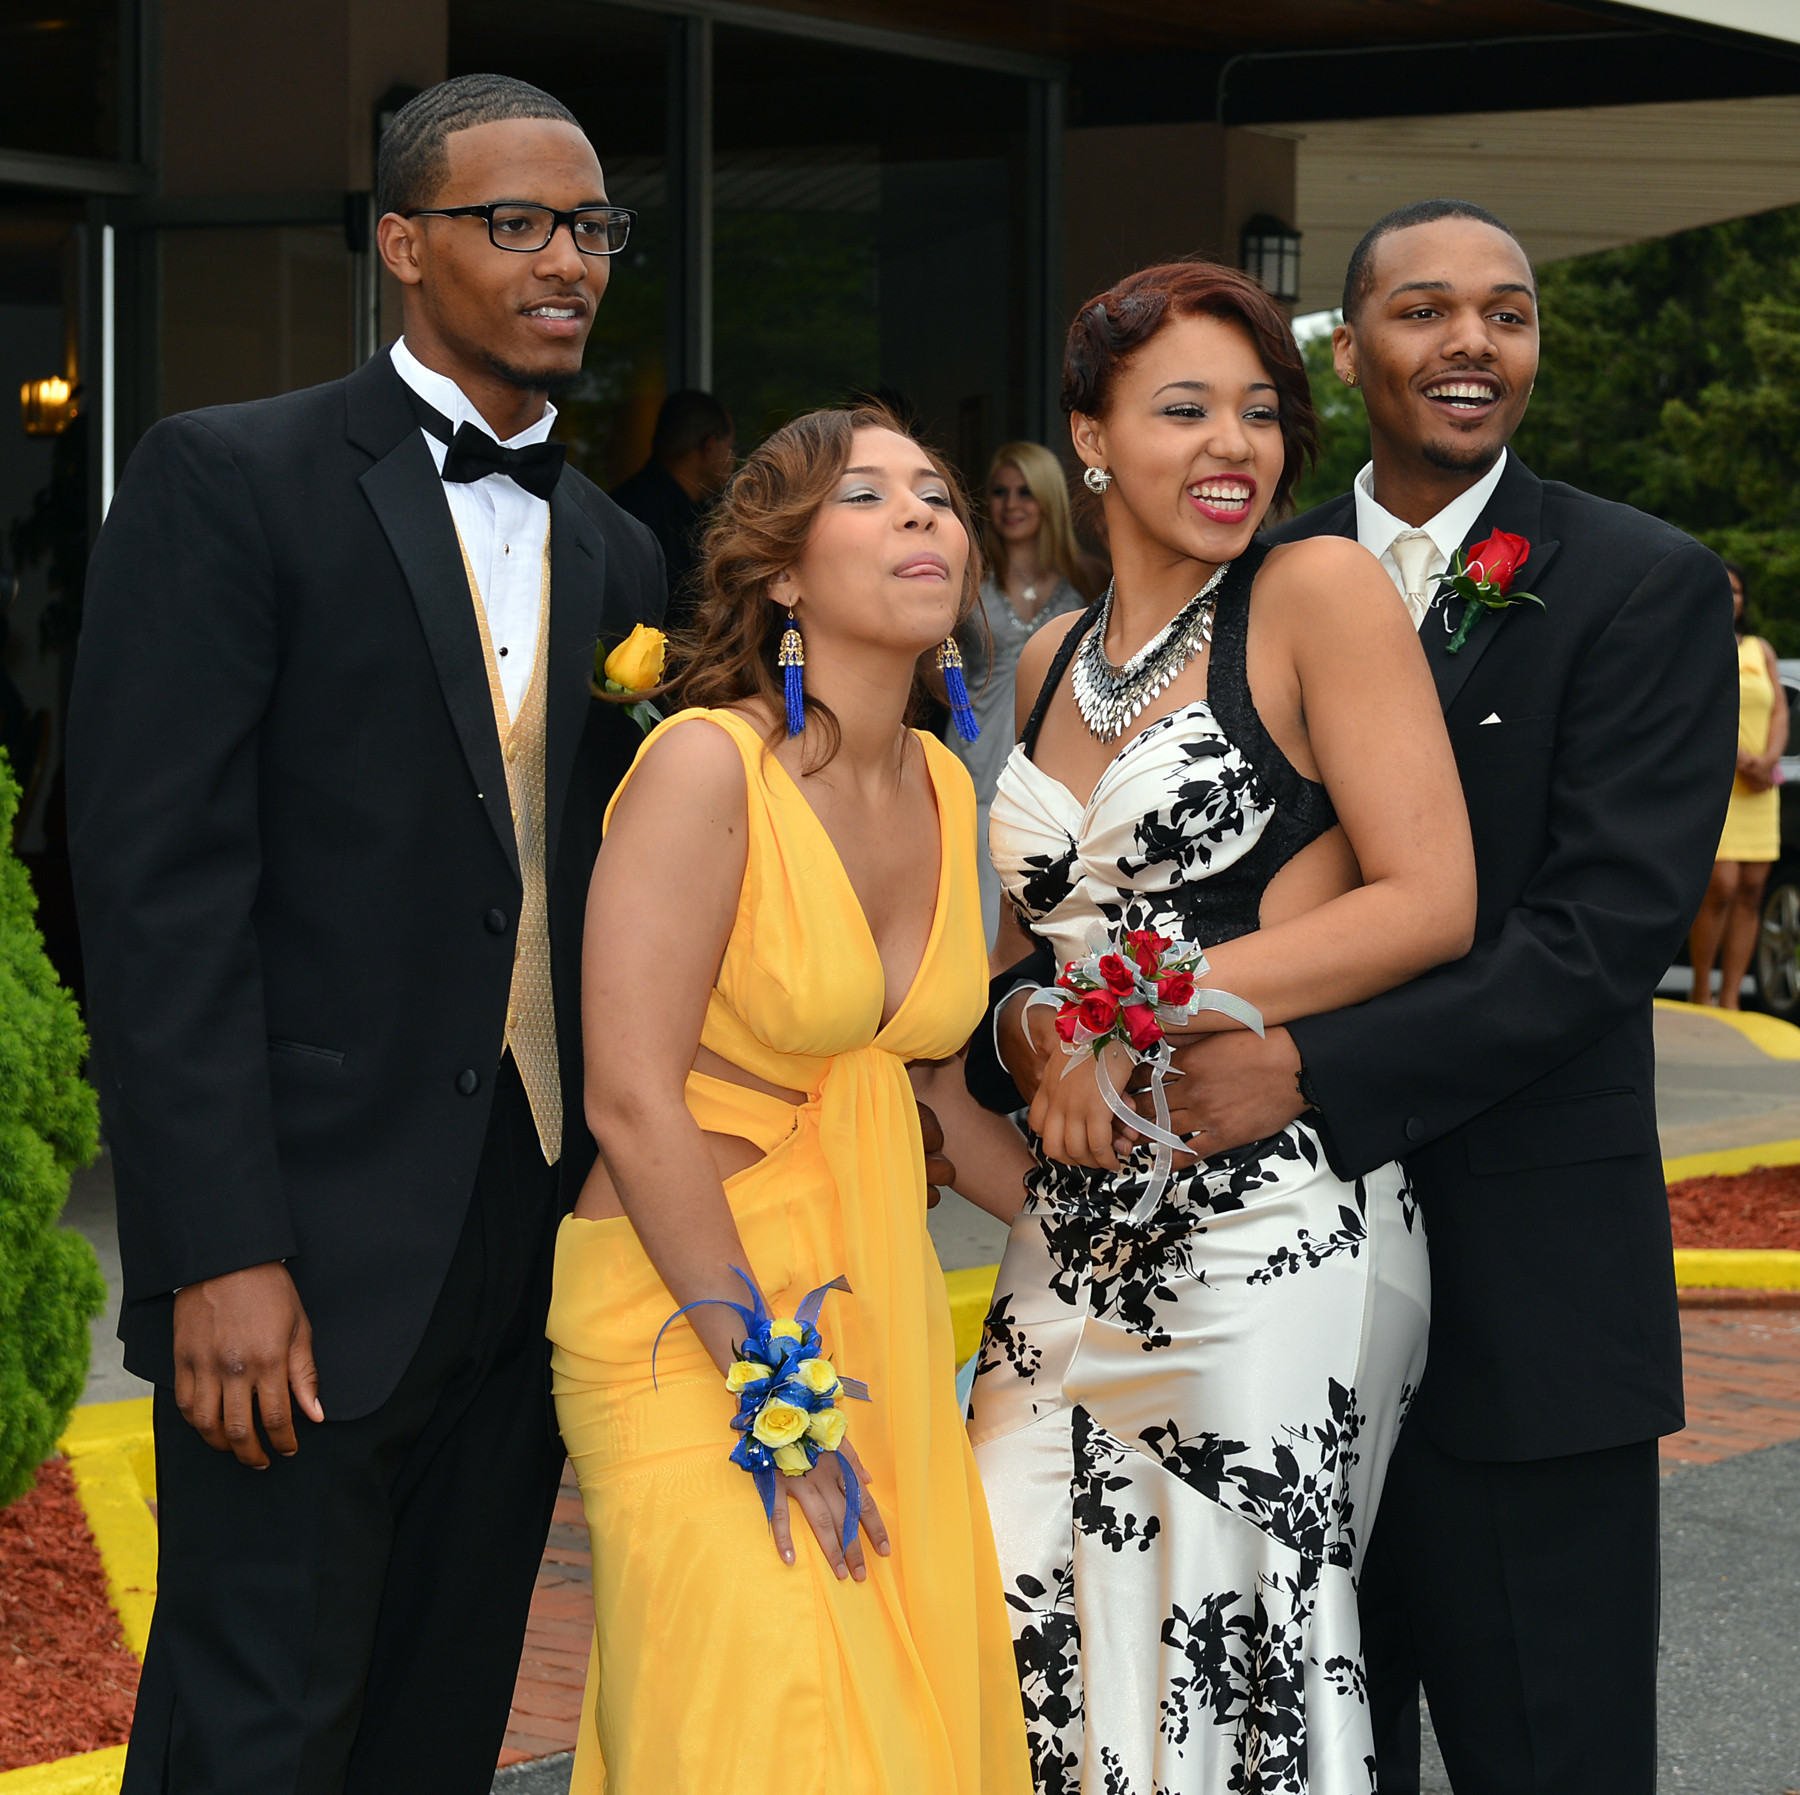 PICTURES William Allen High Schools Prom The Morning Call